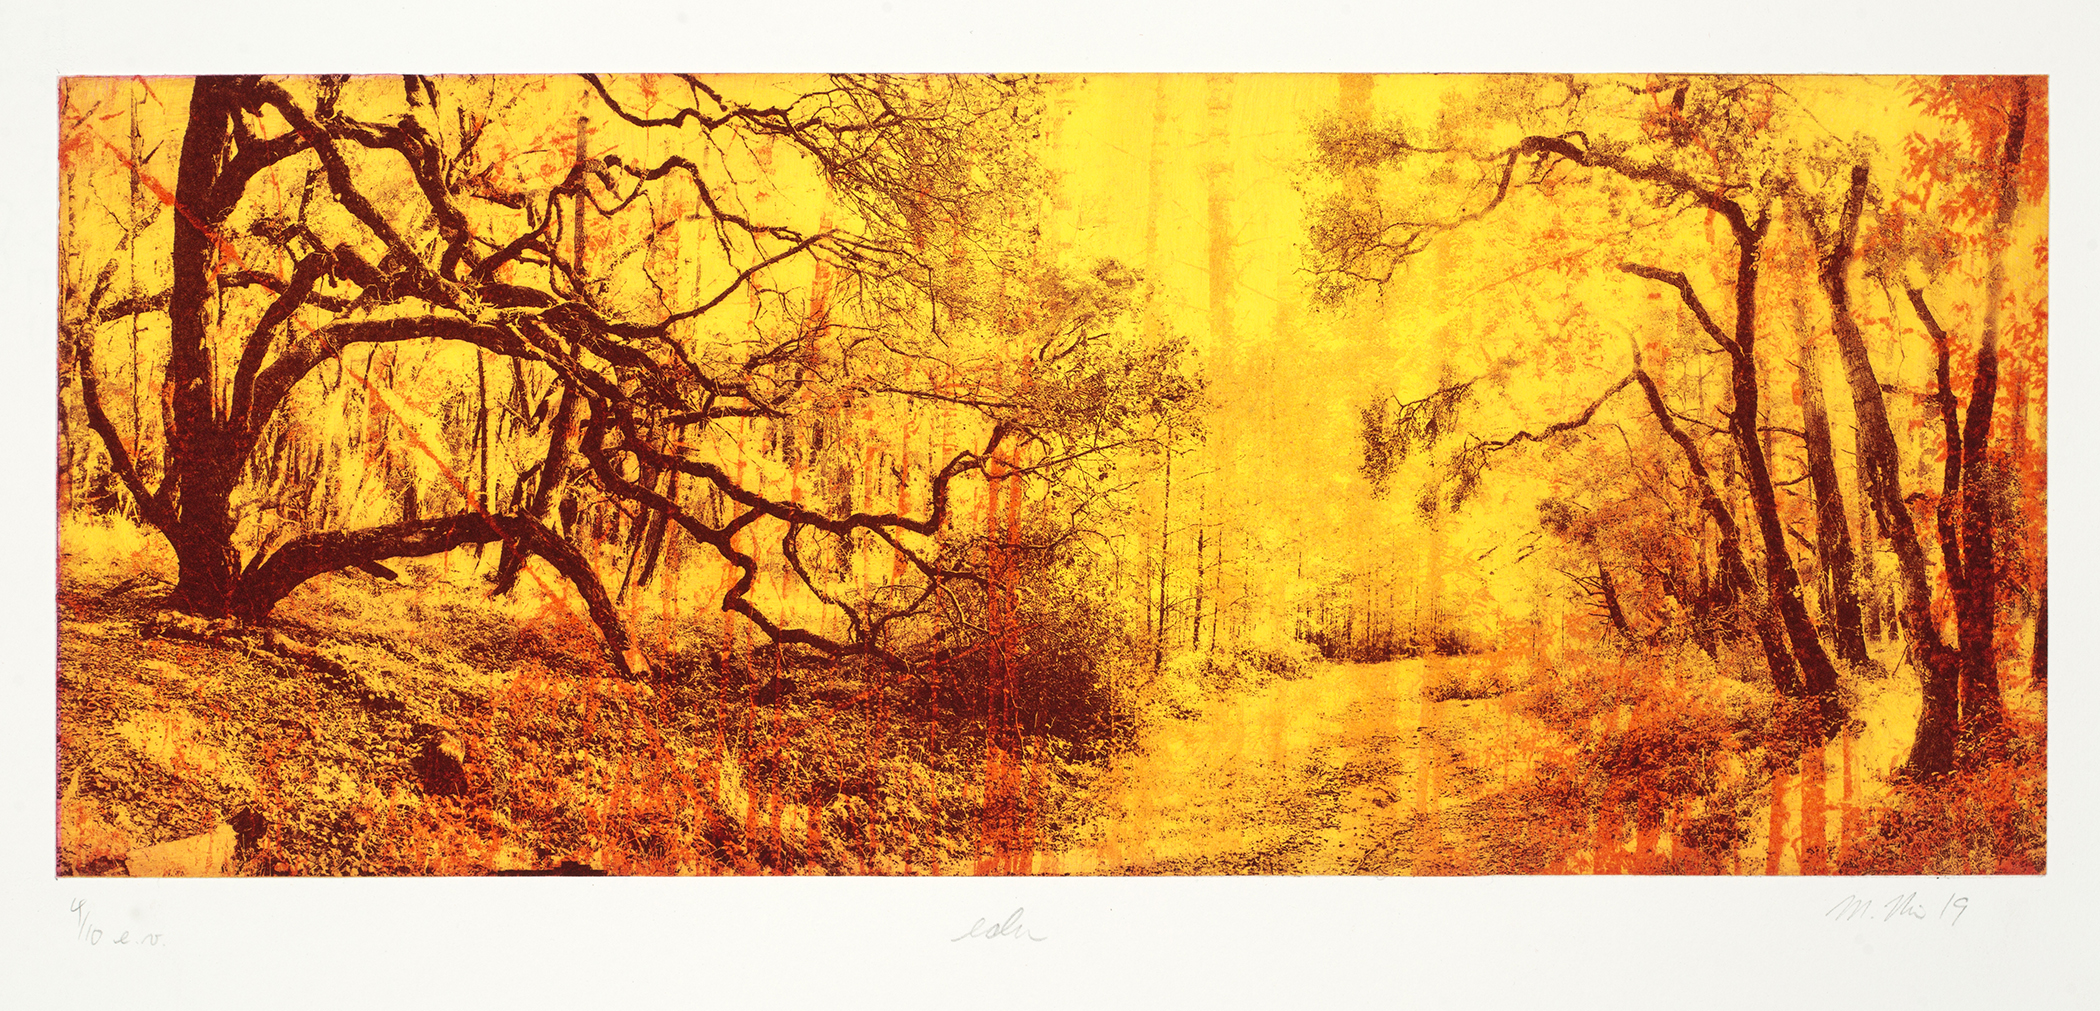 Margaret Niven, Eden 4 of 10, photo polymer intaglio chine collé and chalk pastel, 15 x 30 in, 2021